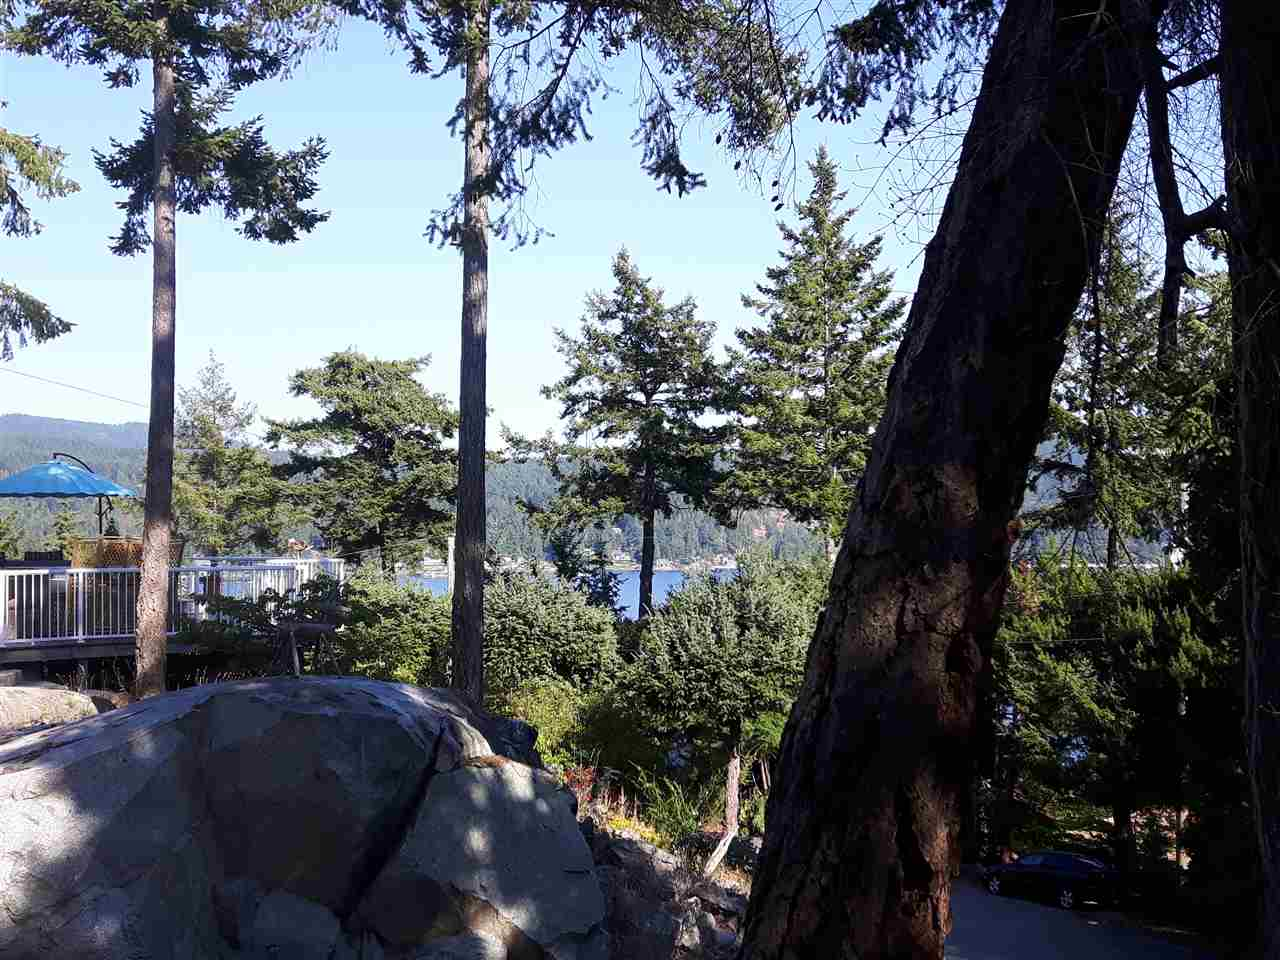 Desirable elevated ocean view lot on upscale Truman Rd. with community sewer available and services at road. Very close to Crab Rd beach access with mini park. Also easy access 3 minutes away to famous Smugglers Cove Marine Park. Lot needs a driveway.